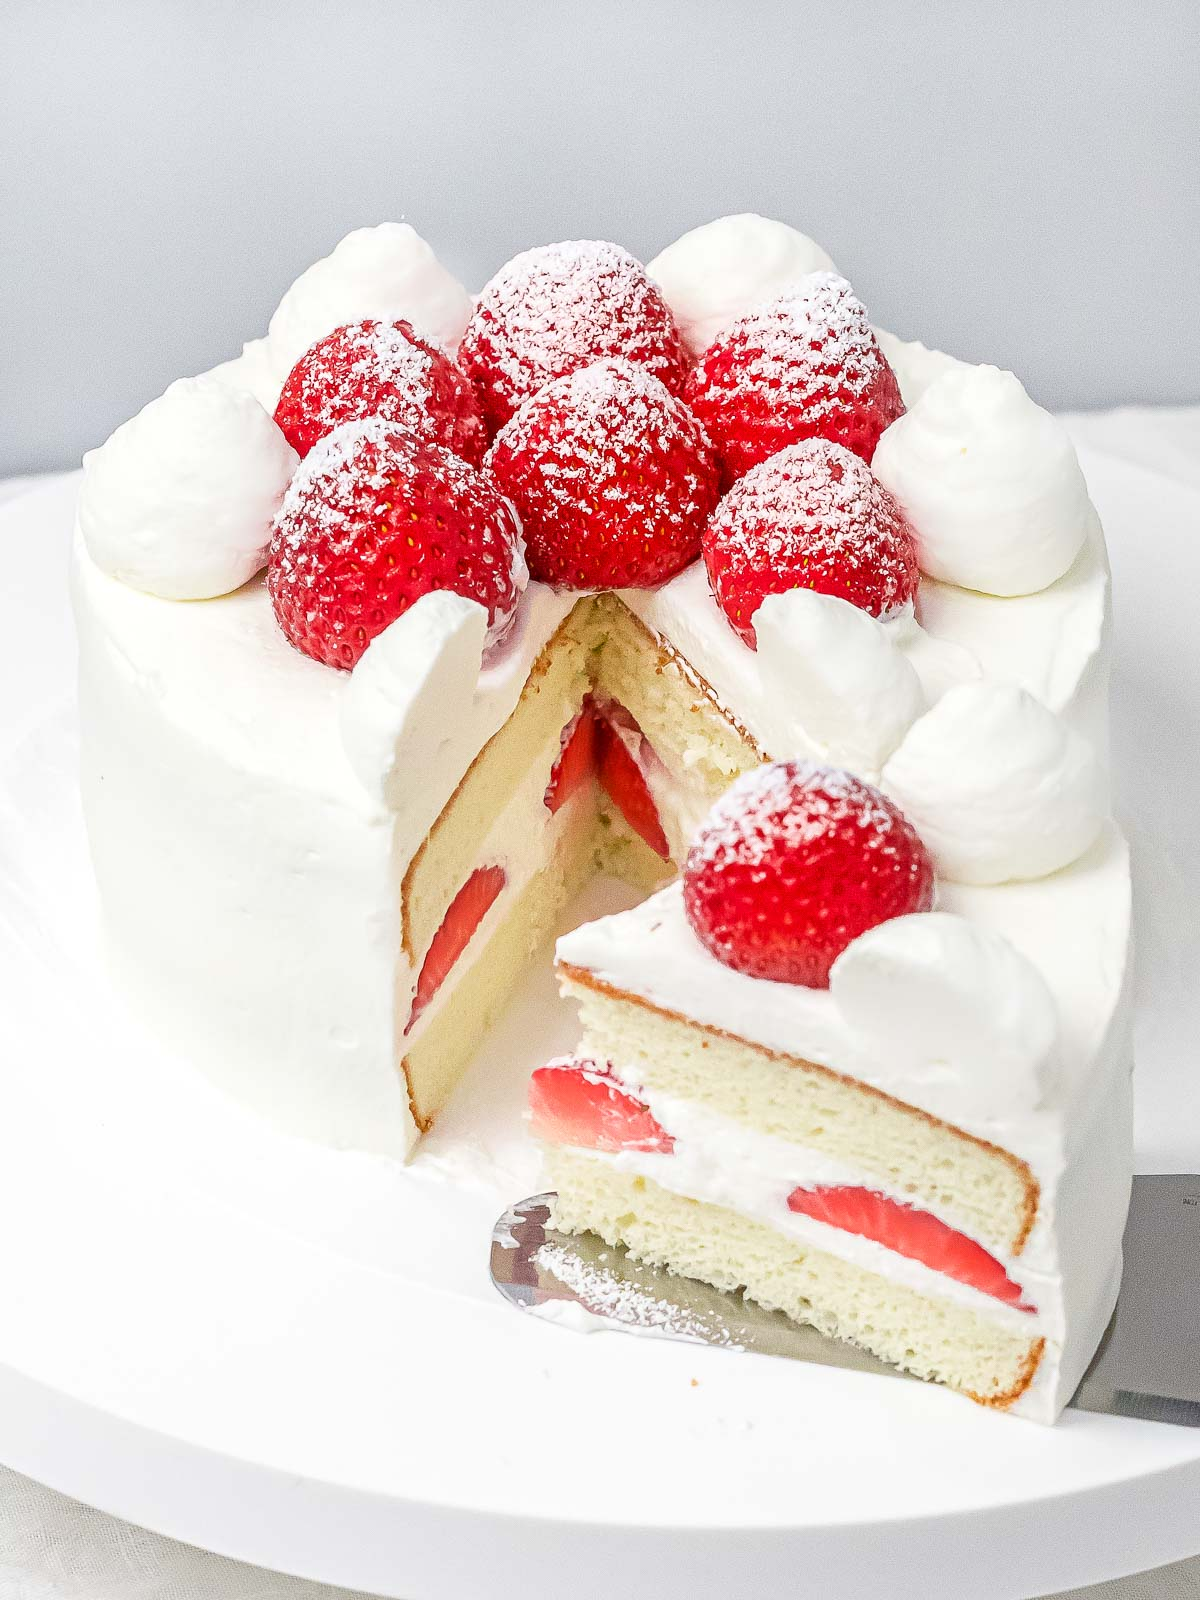 a slice of fresh strawberry cream cake next to whole cake with strawberries and whipped cream